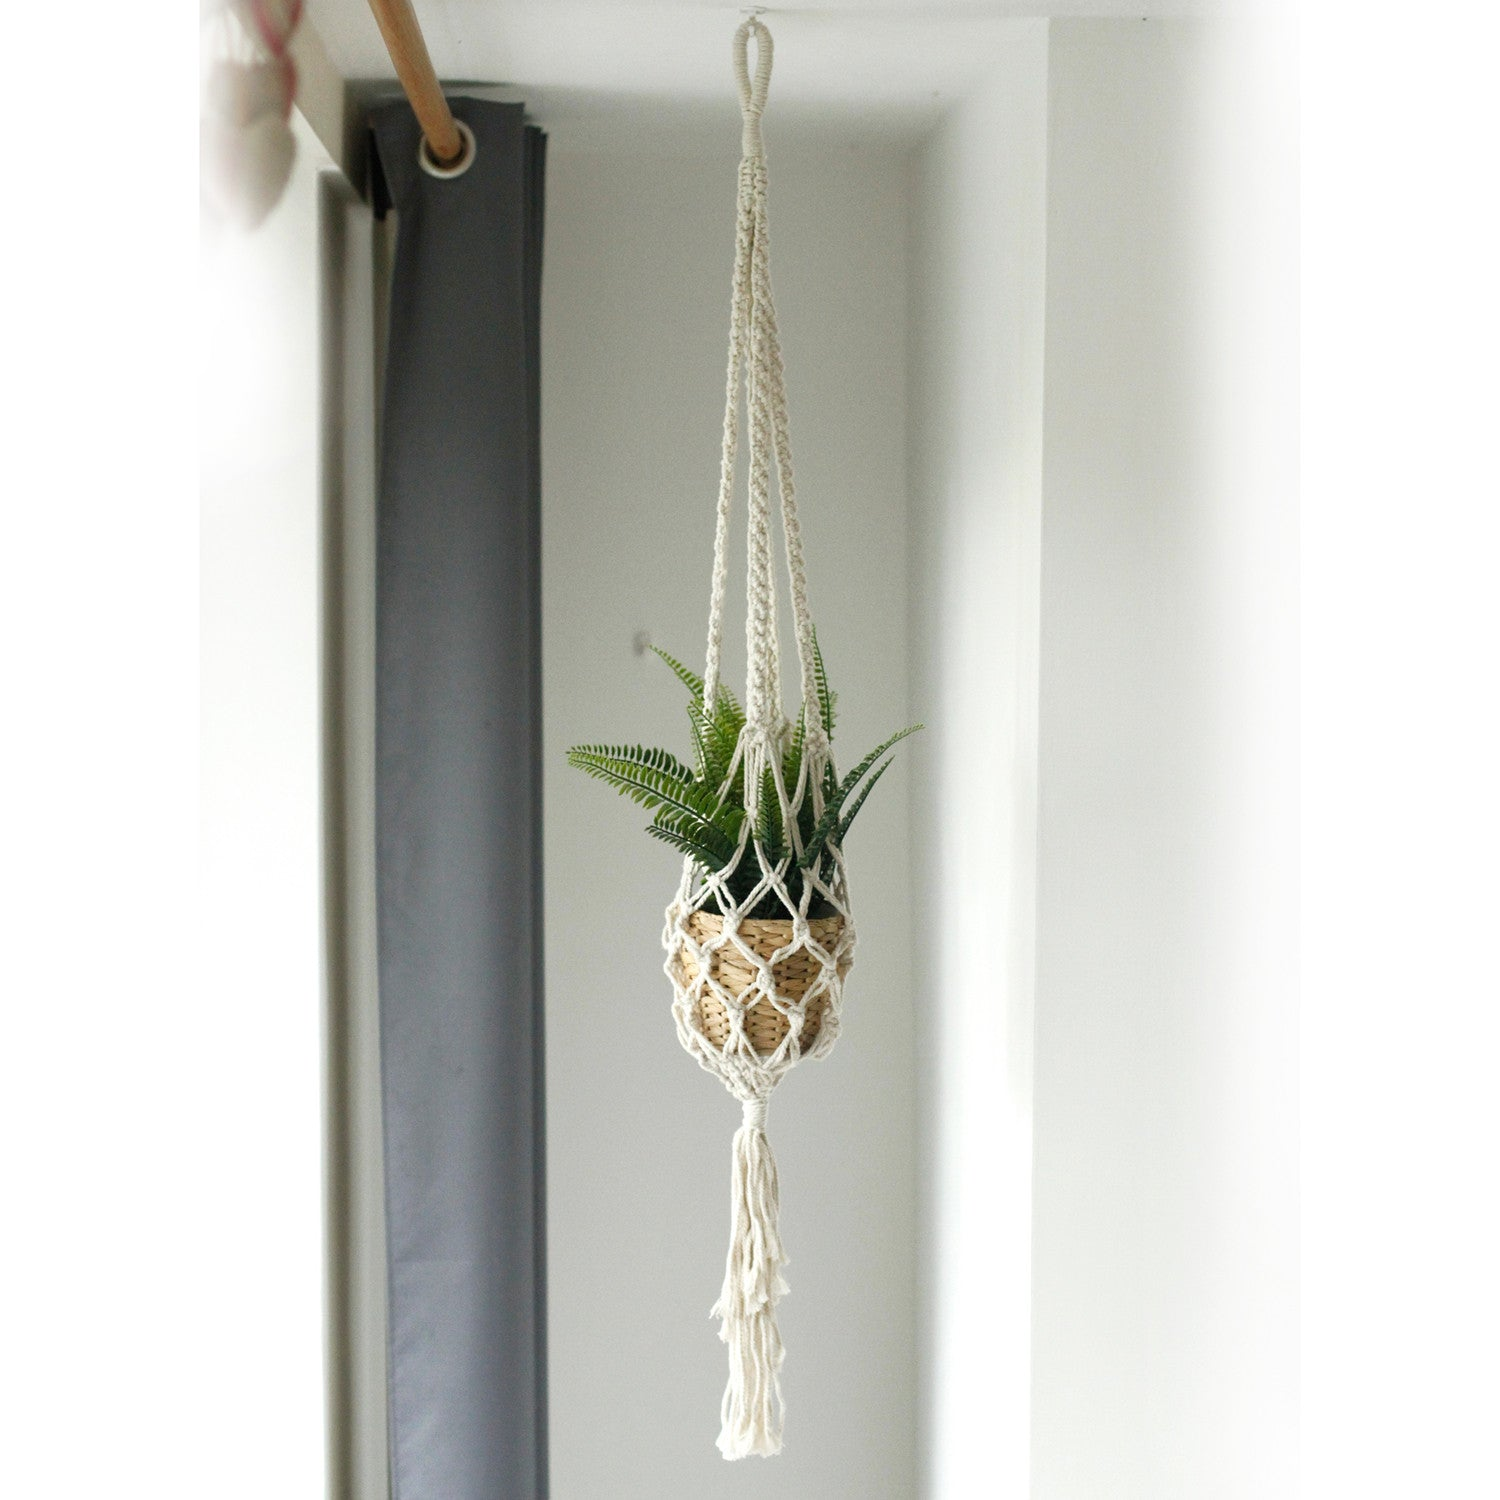 Macrame Pot Holder - Large Pot Holder - Extra Long - Ellie J Shoppe